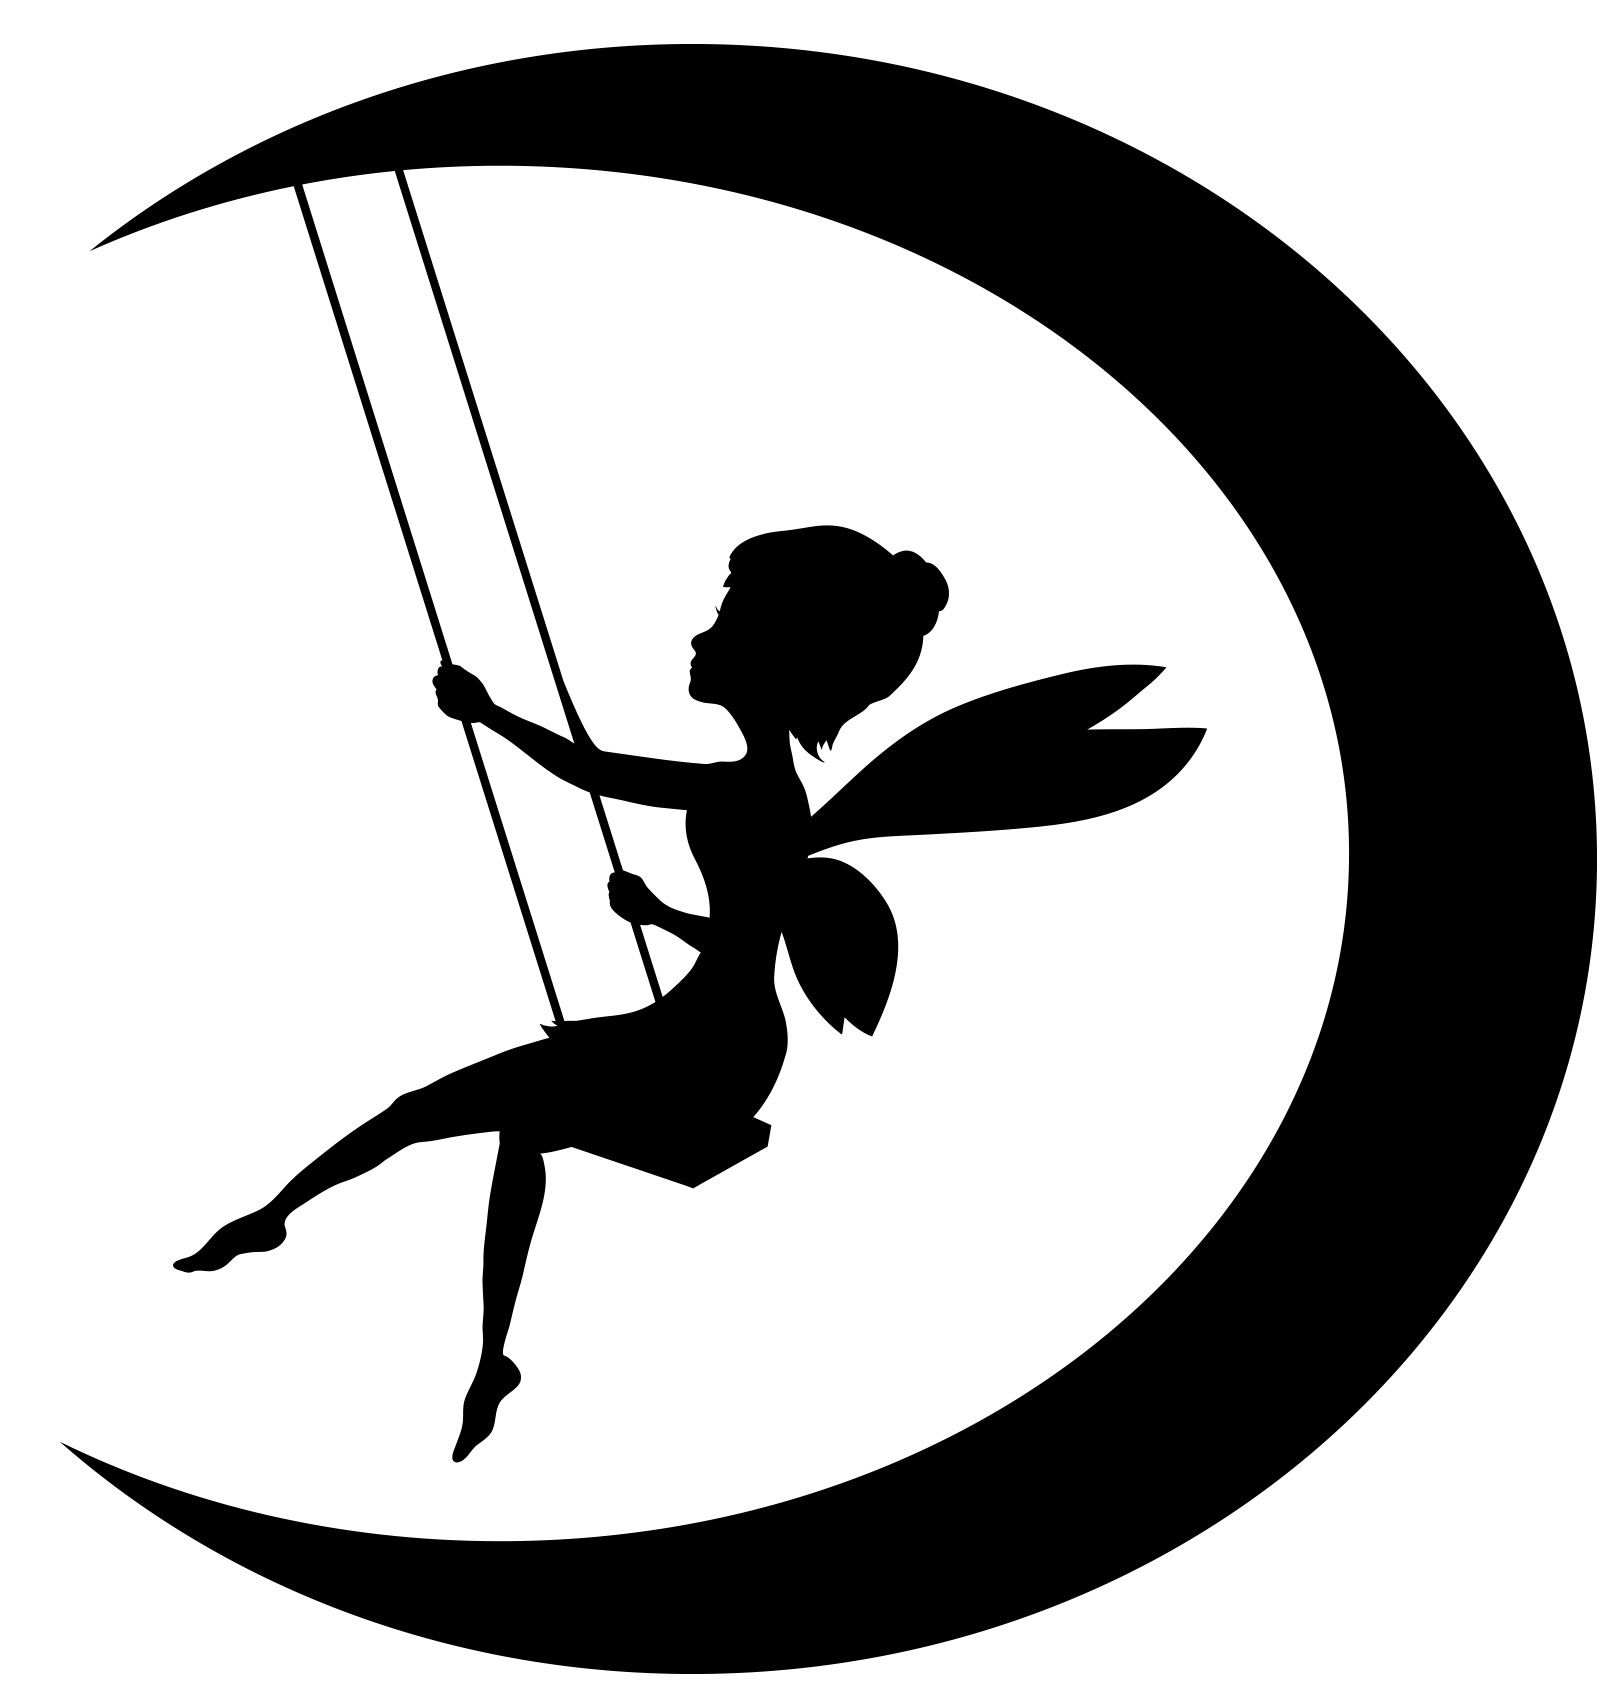 Fairy clipart moon. Viewing gallery for on